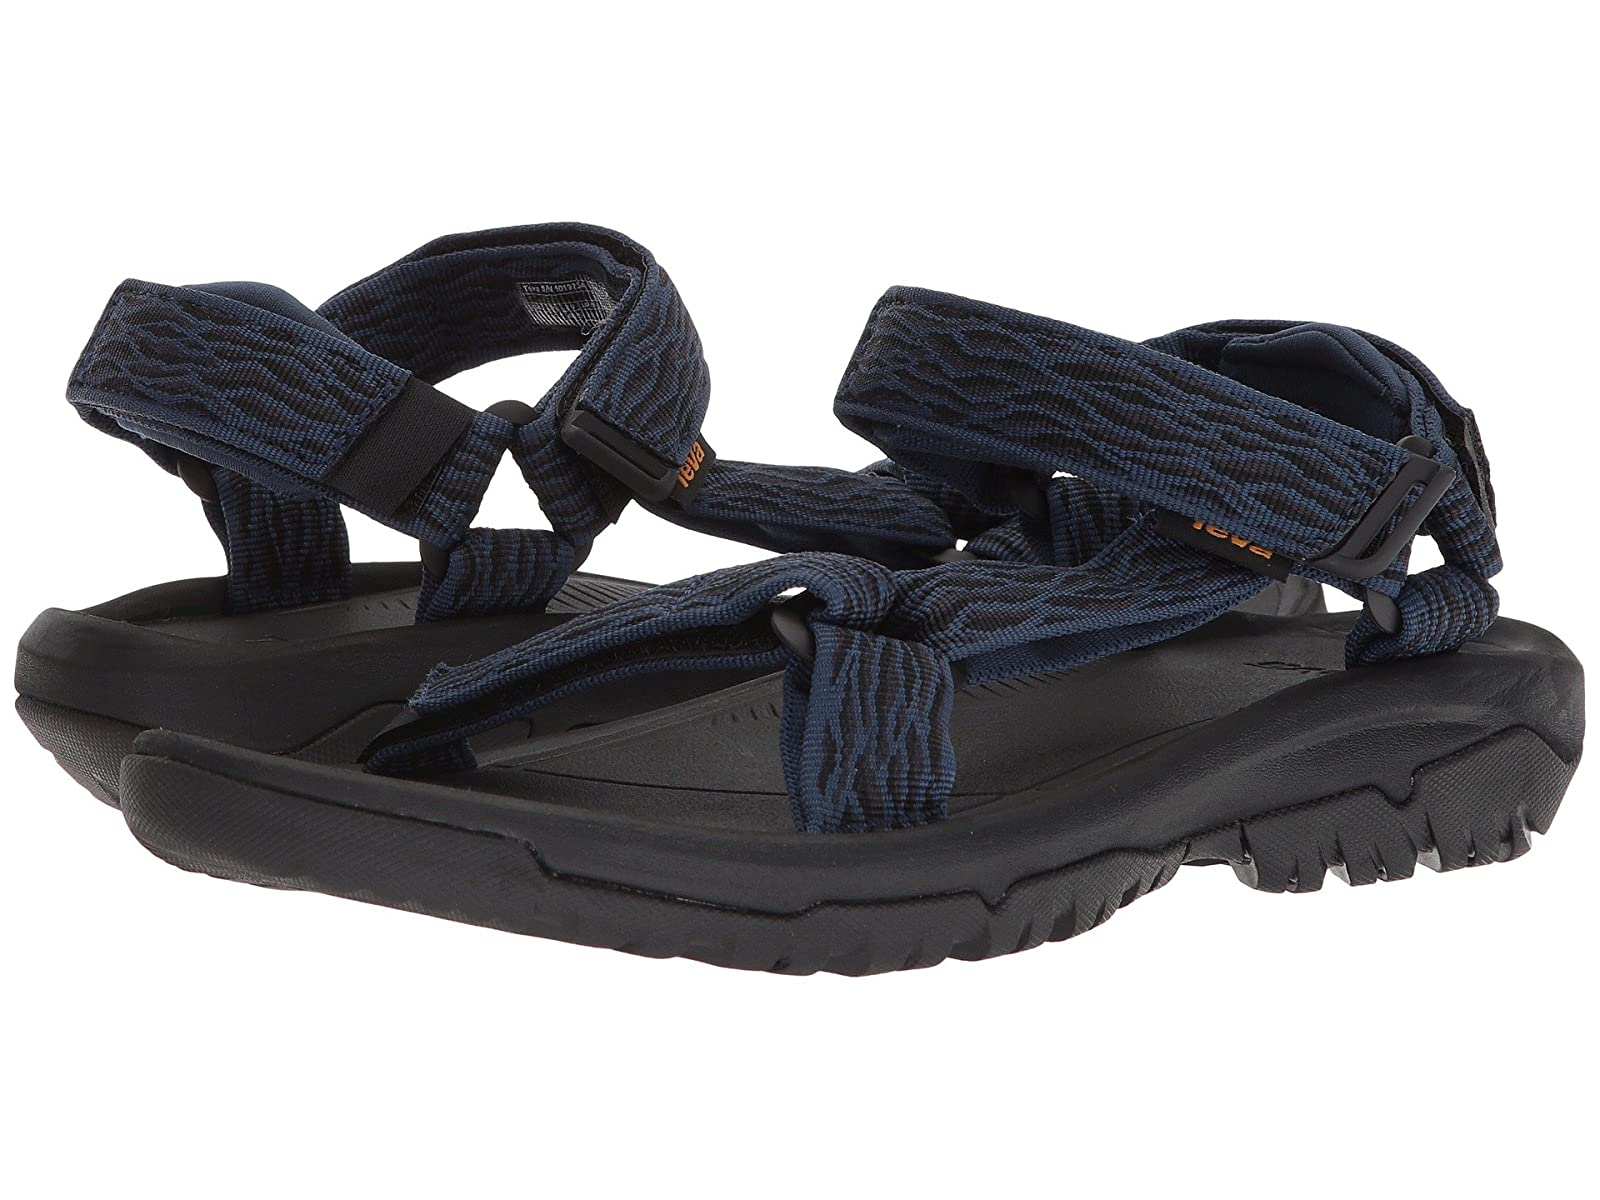 Teva Hurricane XLT2Atmospheric grades have affordable shoes